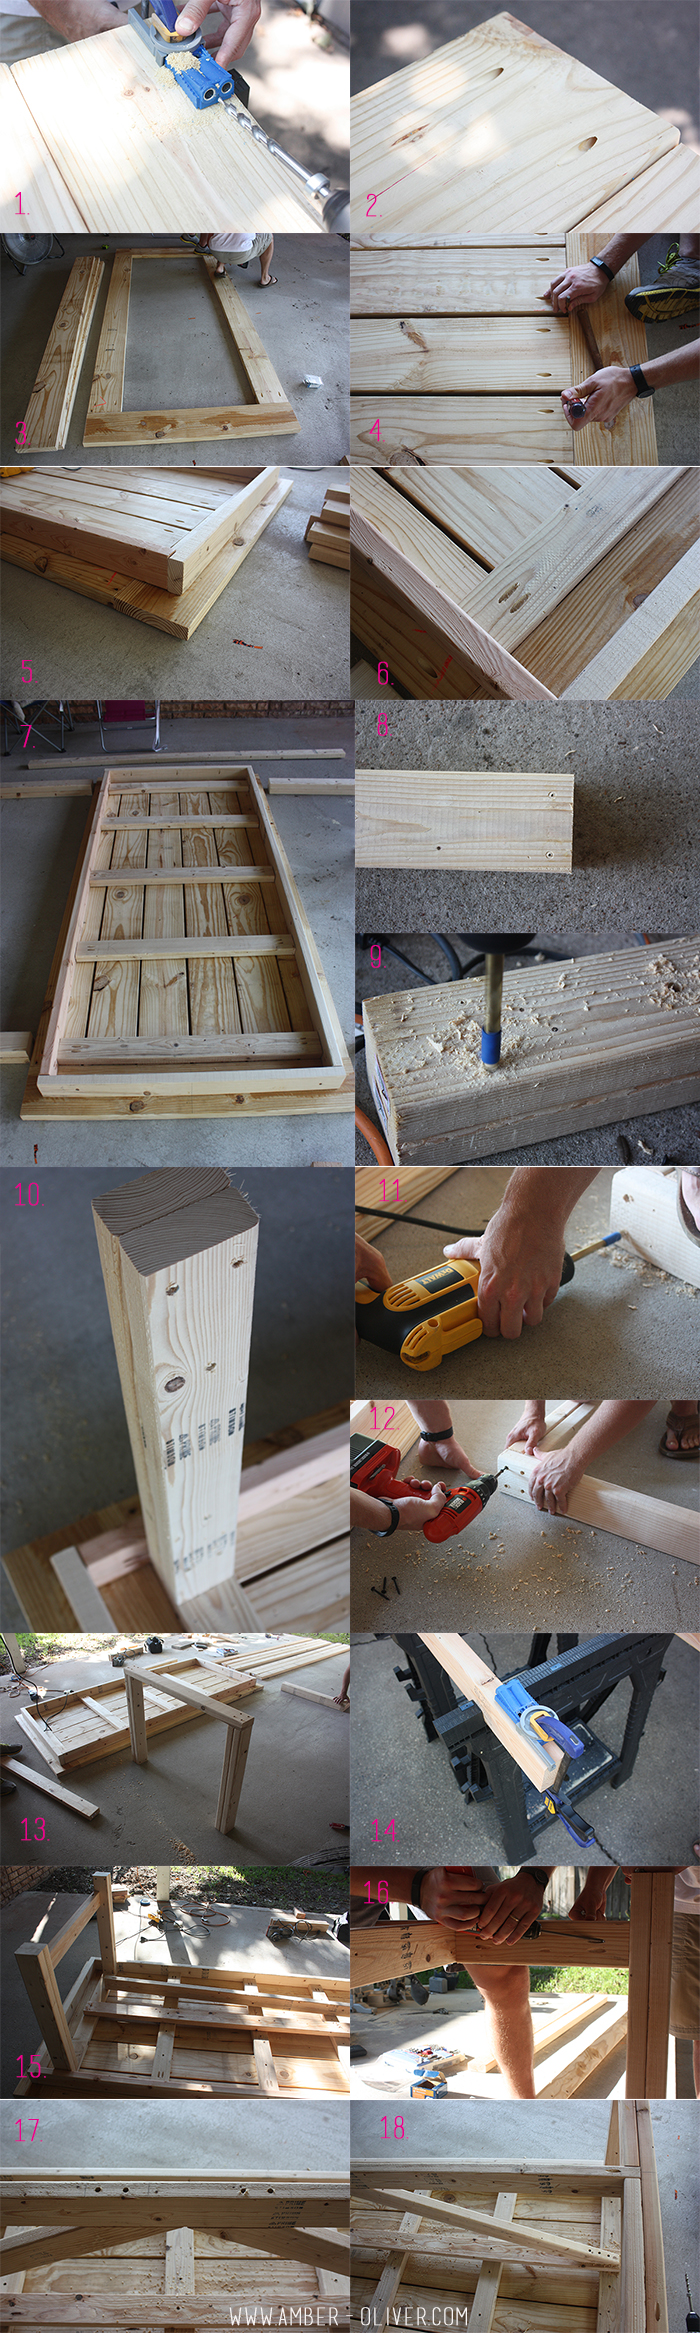 DIY patio table by Amber Oliver